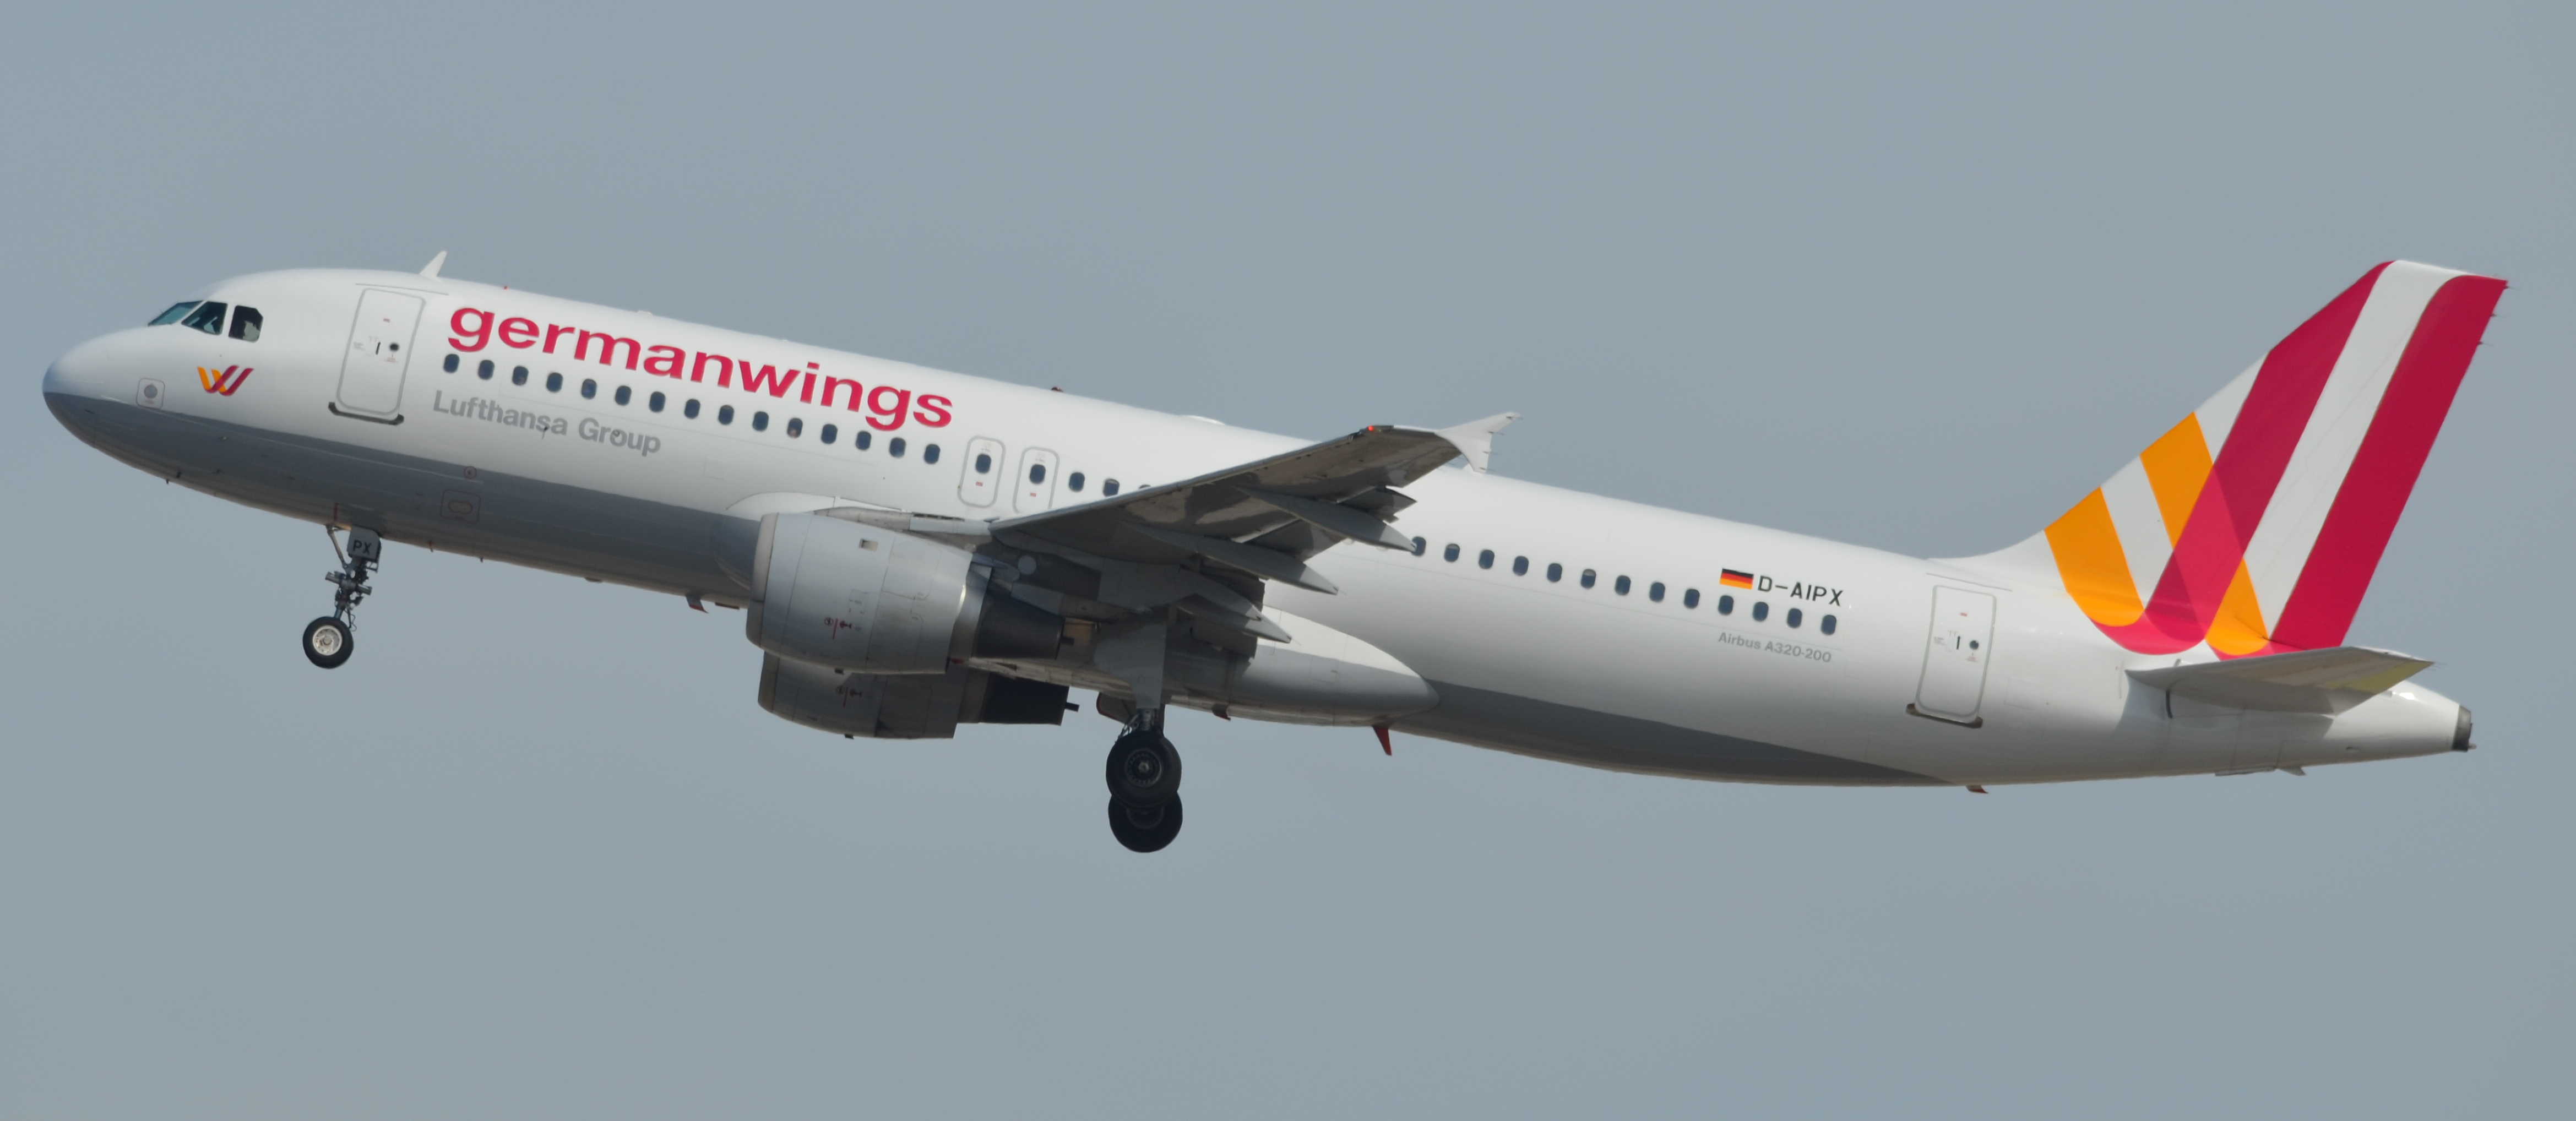 Germanwings 9525, an Airbus A320 with tail number D-AIPX, was lost in 2015.